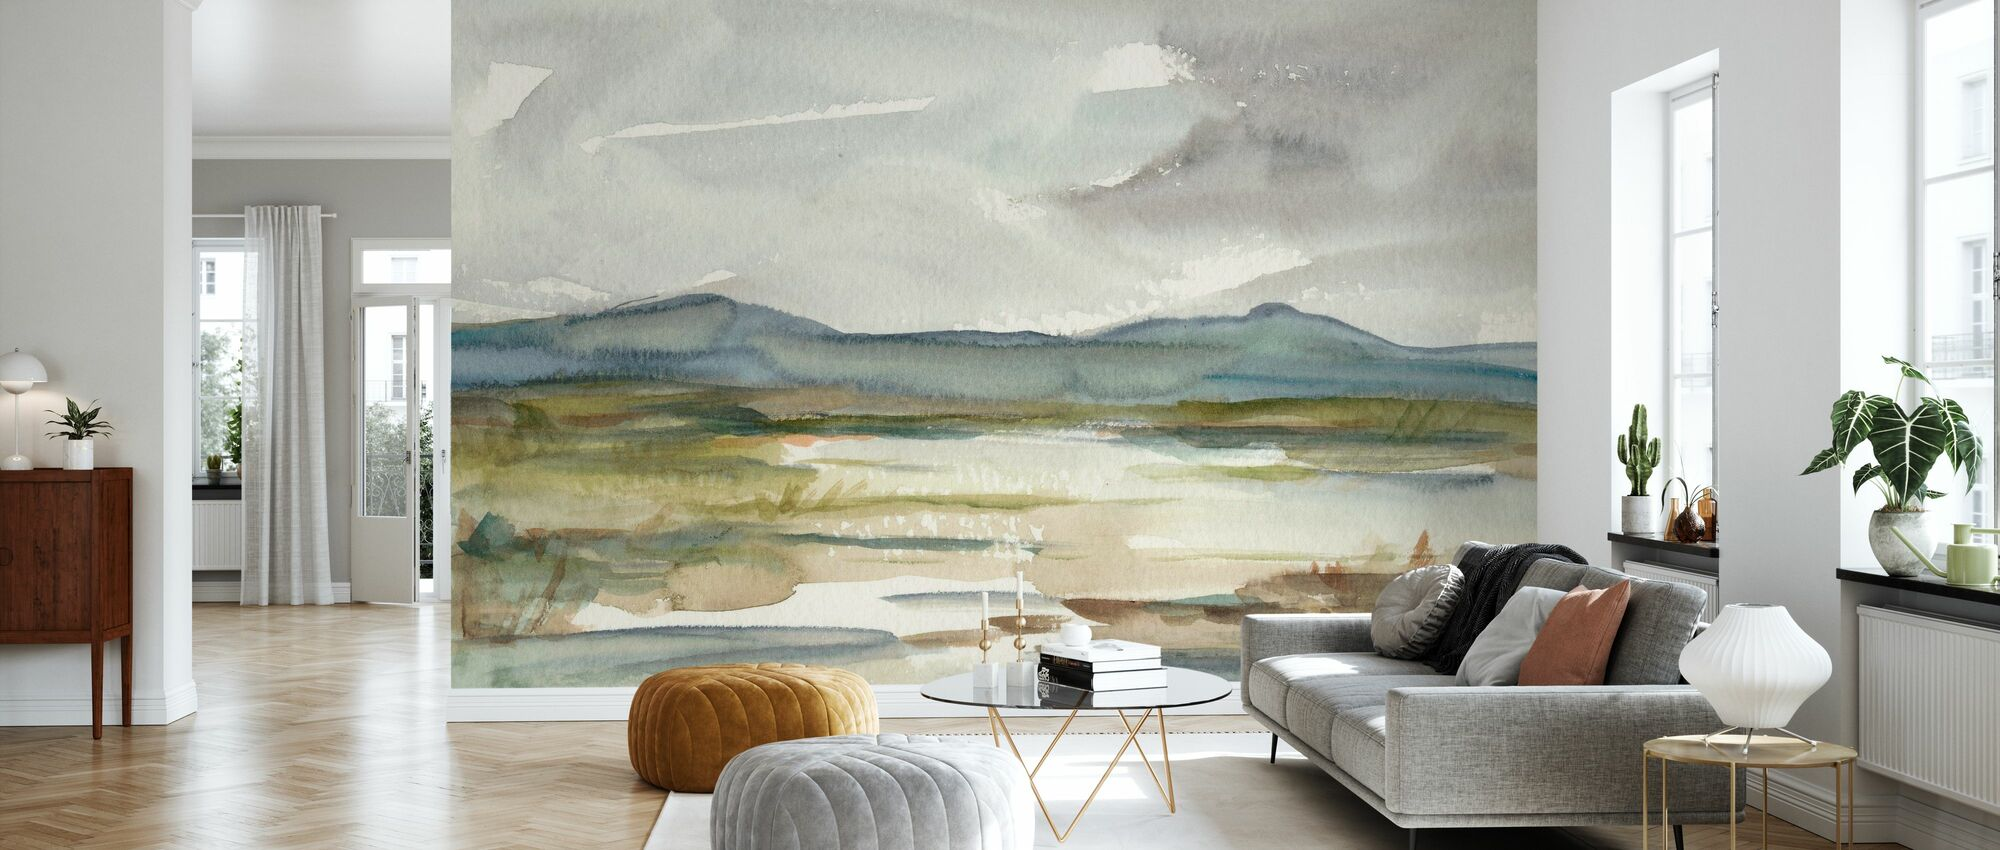 Overcast Wetland - Wallpaper - Living Room